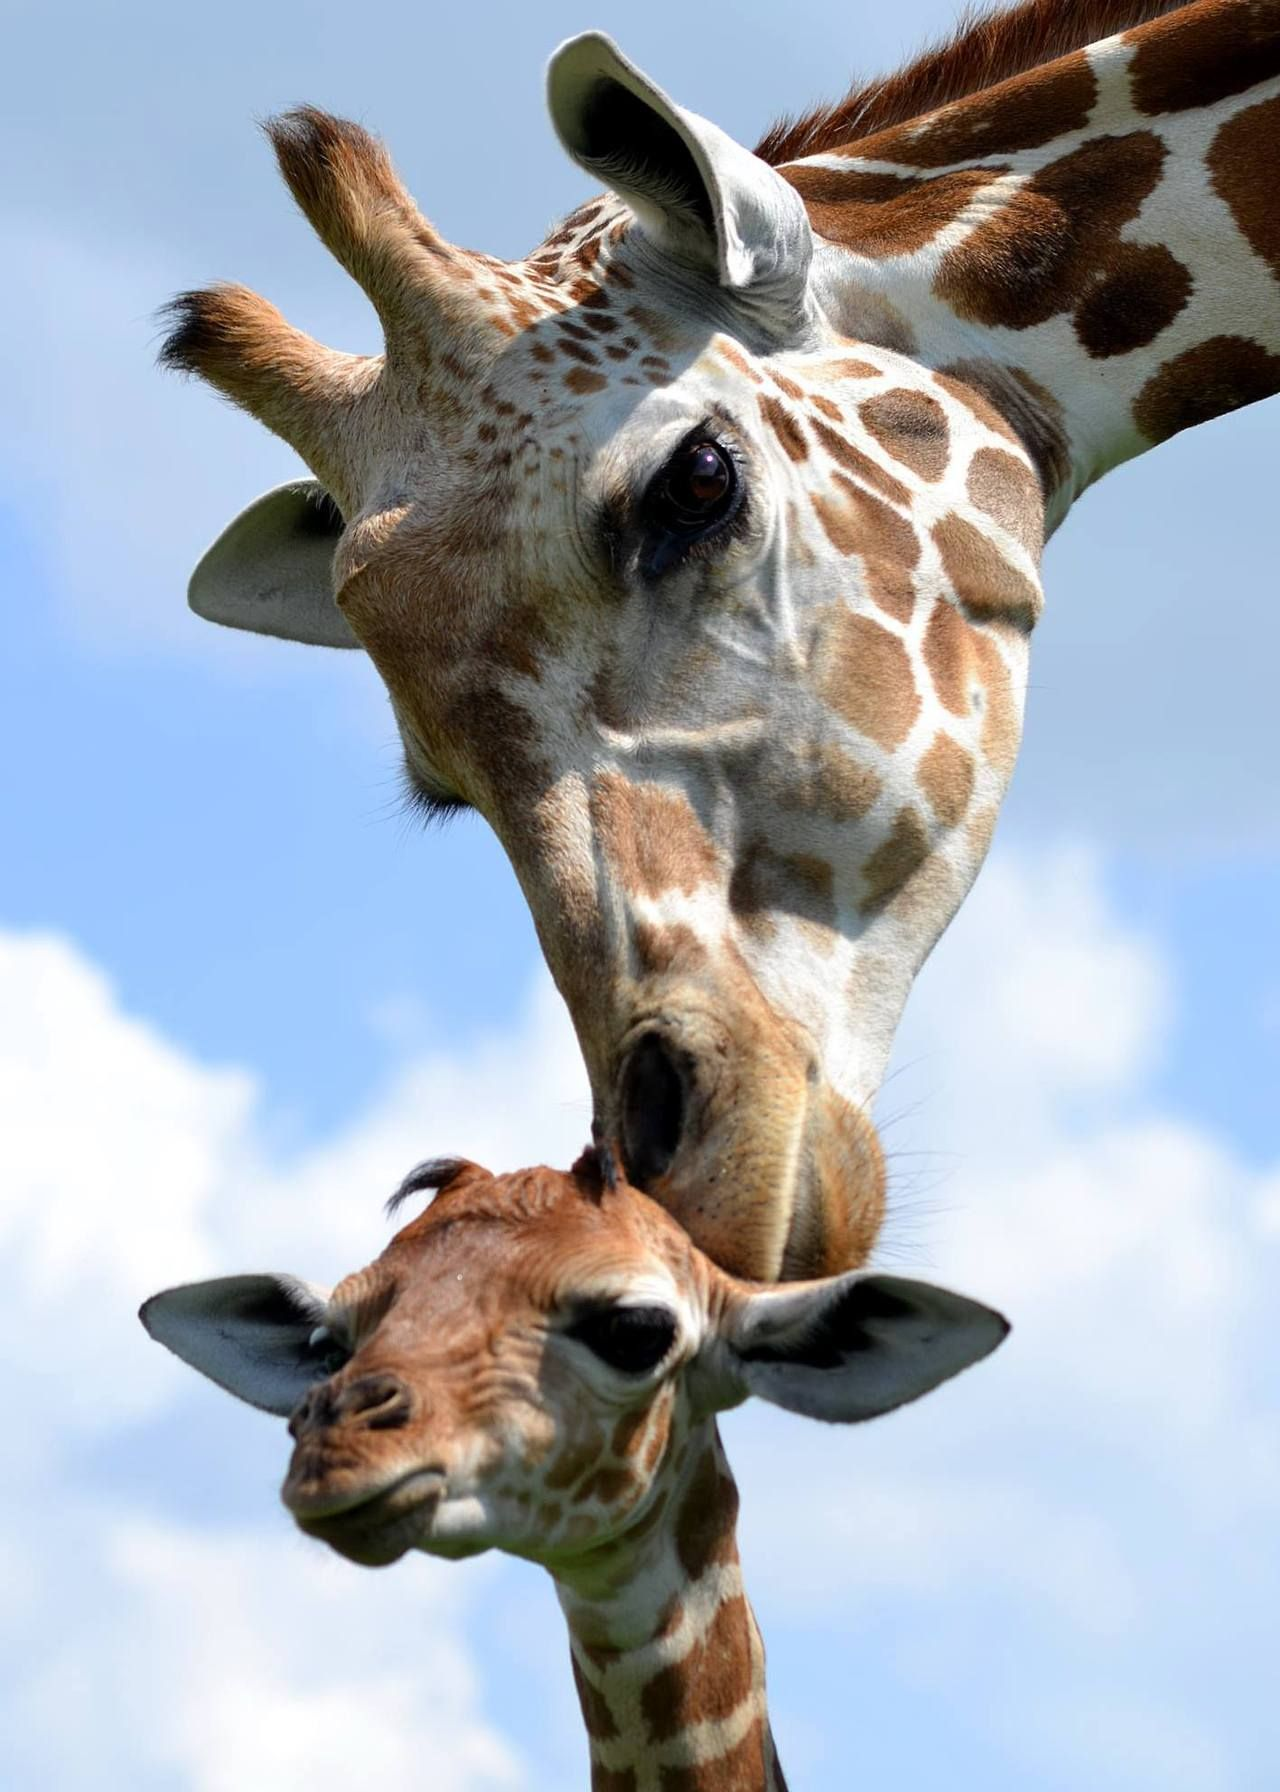 Mama and baby giraffes